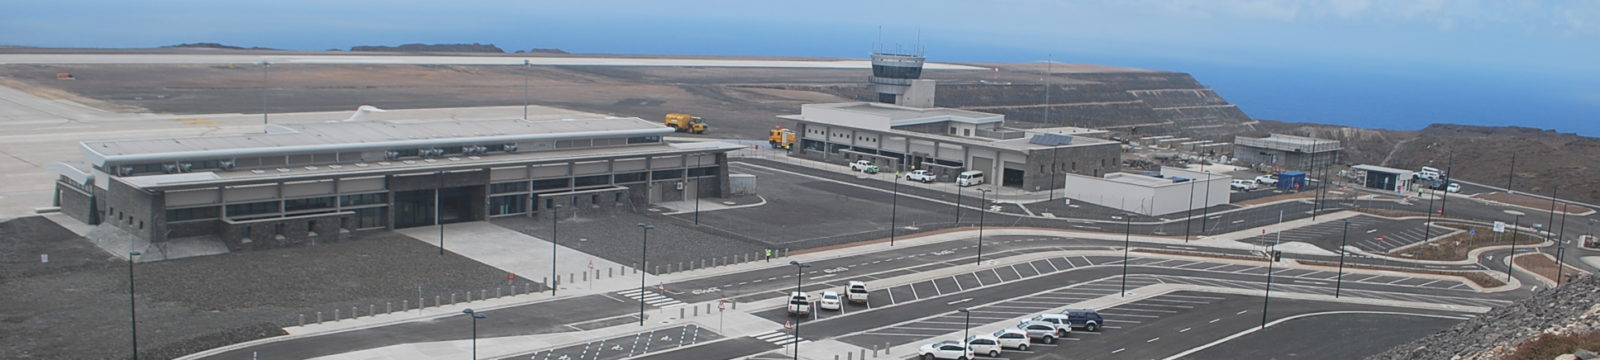 Photo of the car park at St Helena Airport